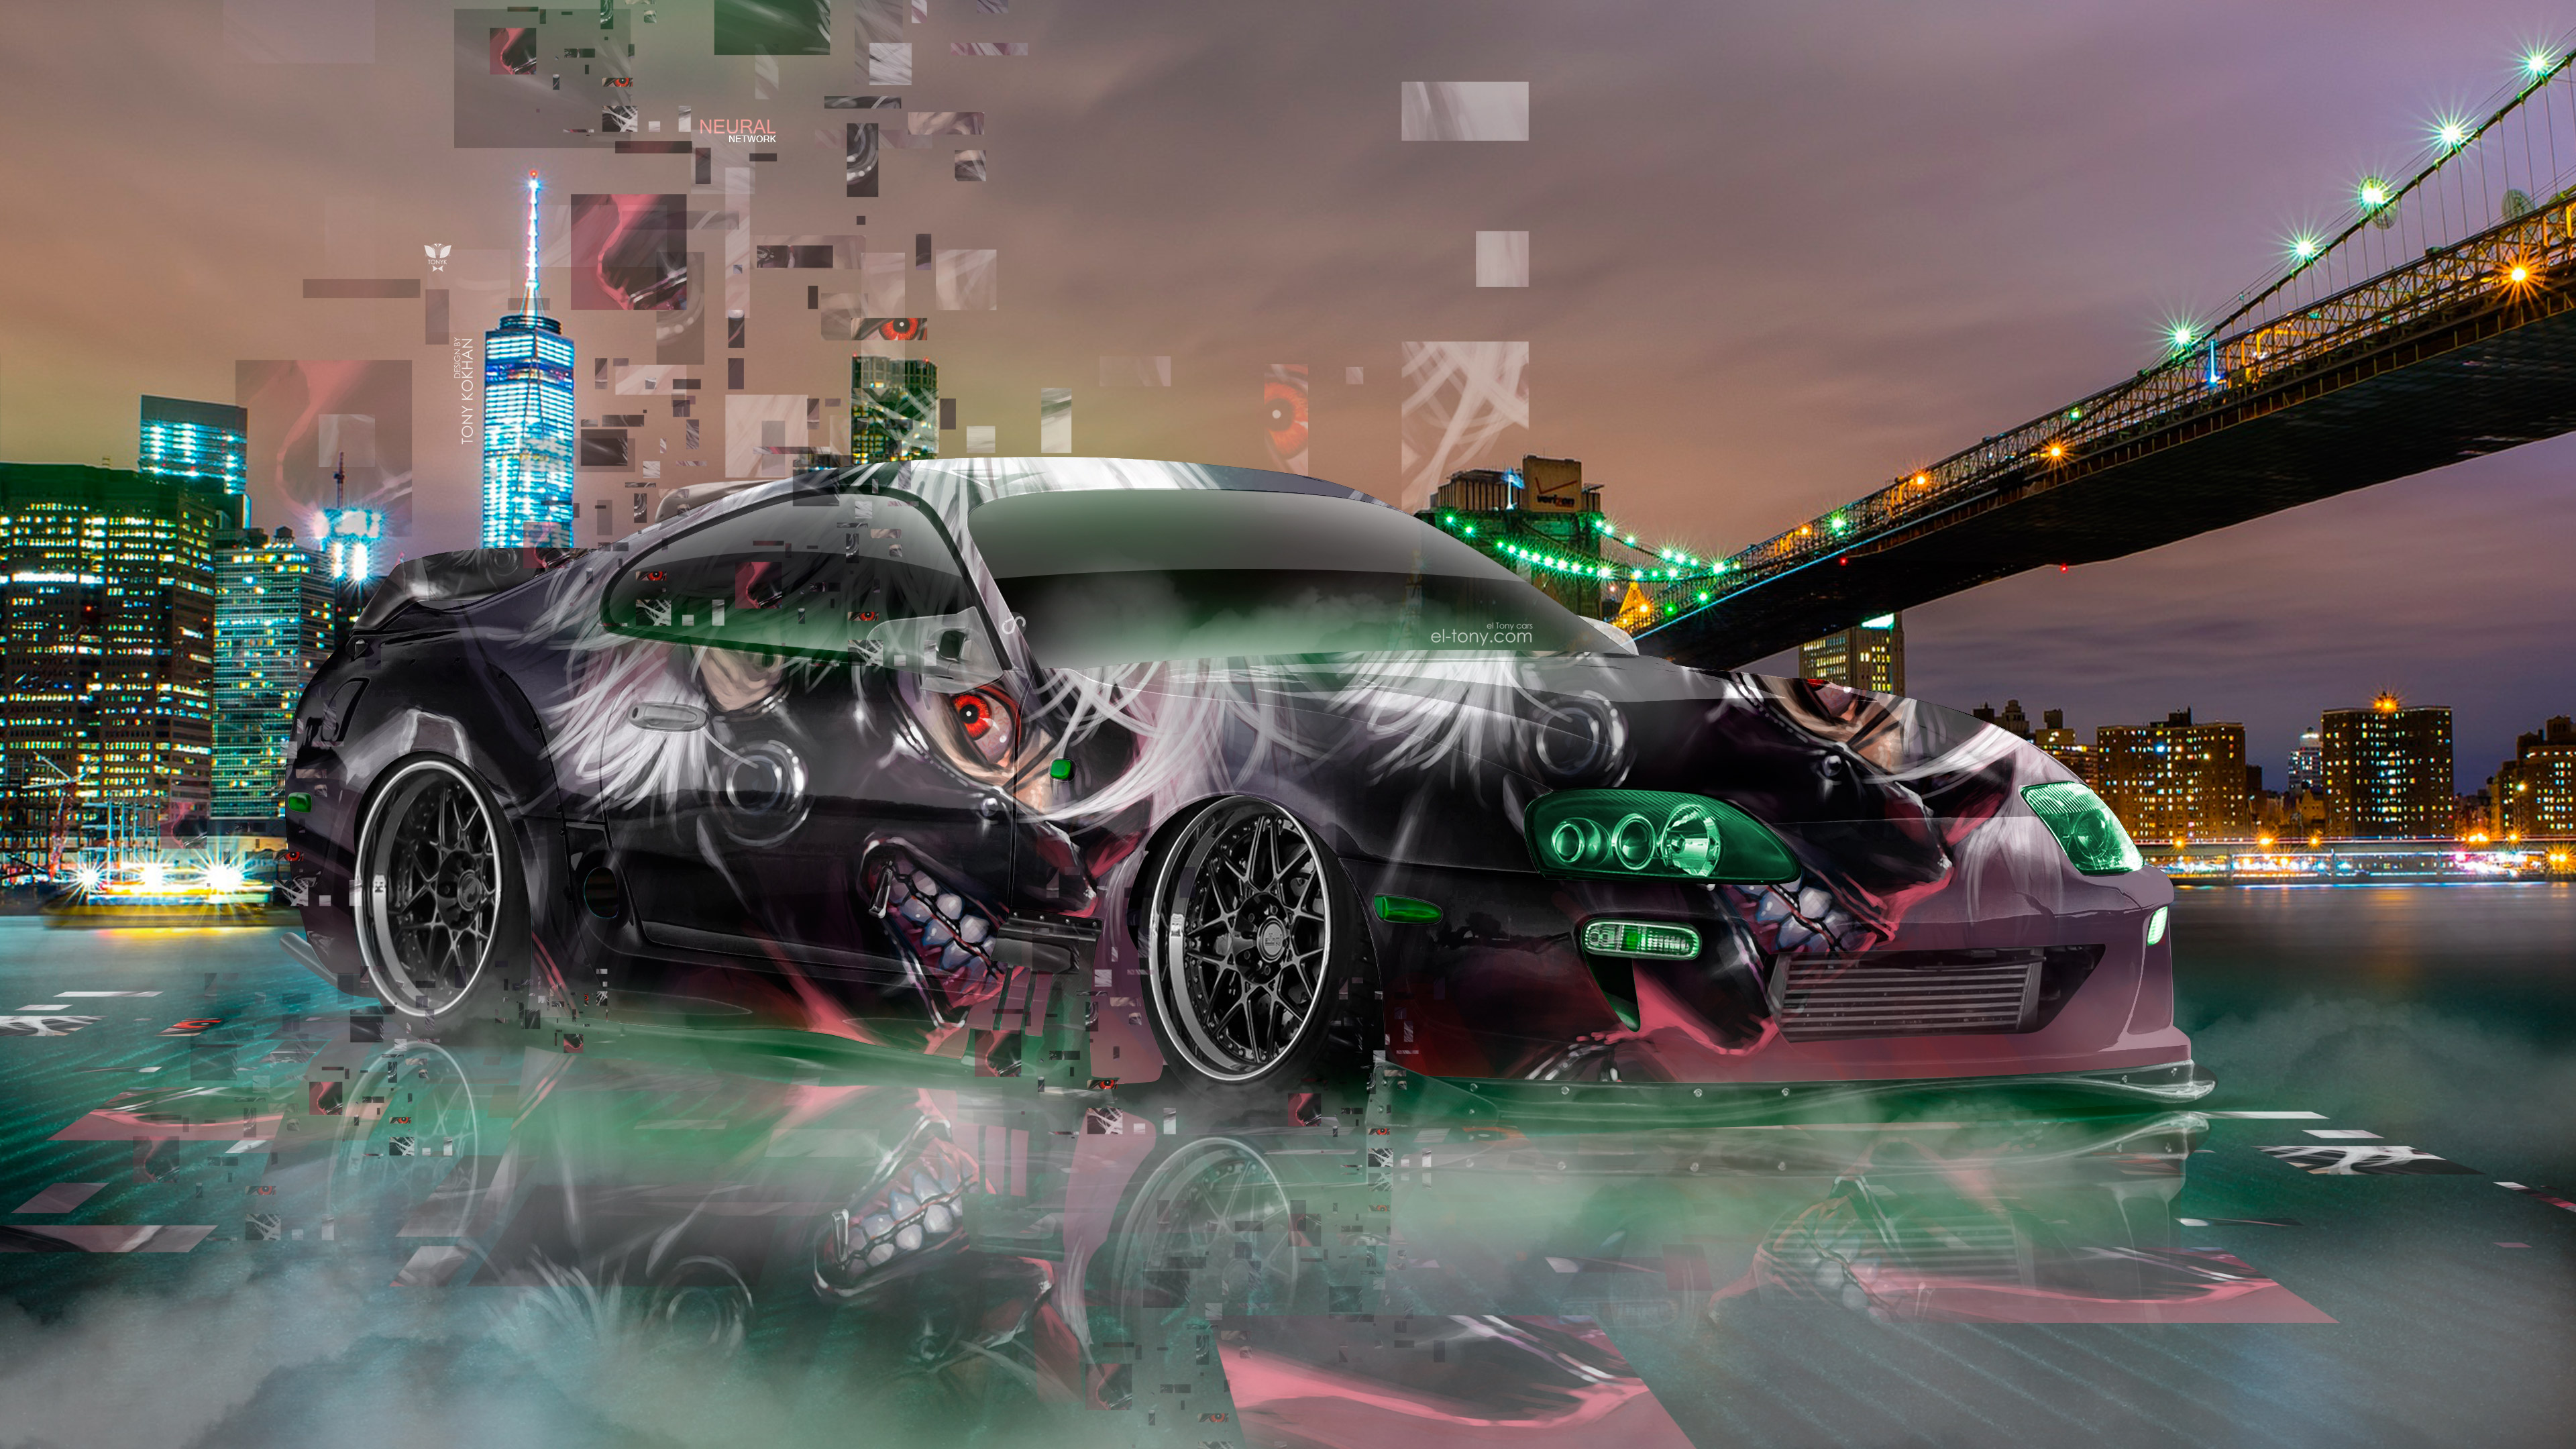 Toyota-Supra-JDM-Tuning-Anime-Ken-Kaneki-Tokyo-Ghoul-Aerography-Neural-Network-New-York-City-Night-Car-2018-Multicolors-4K-Wallpapers-design-by-Tony-Kokhan-www.el-tony.com-image